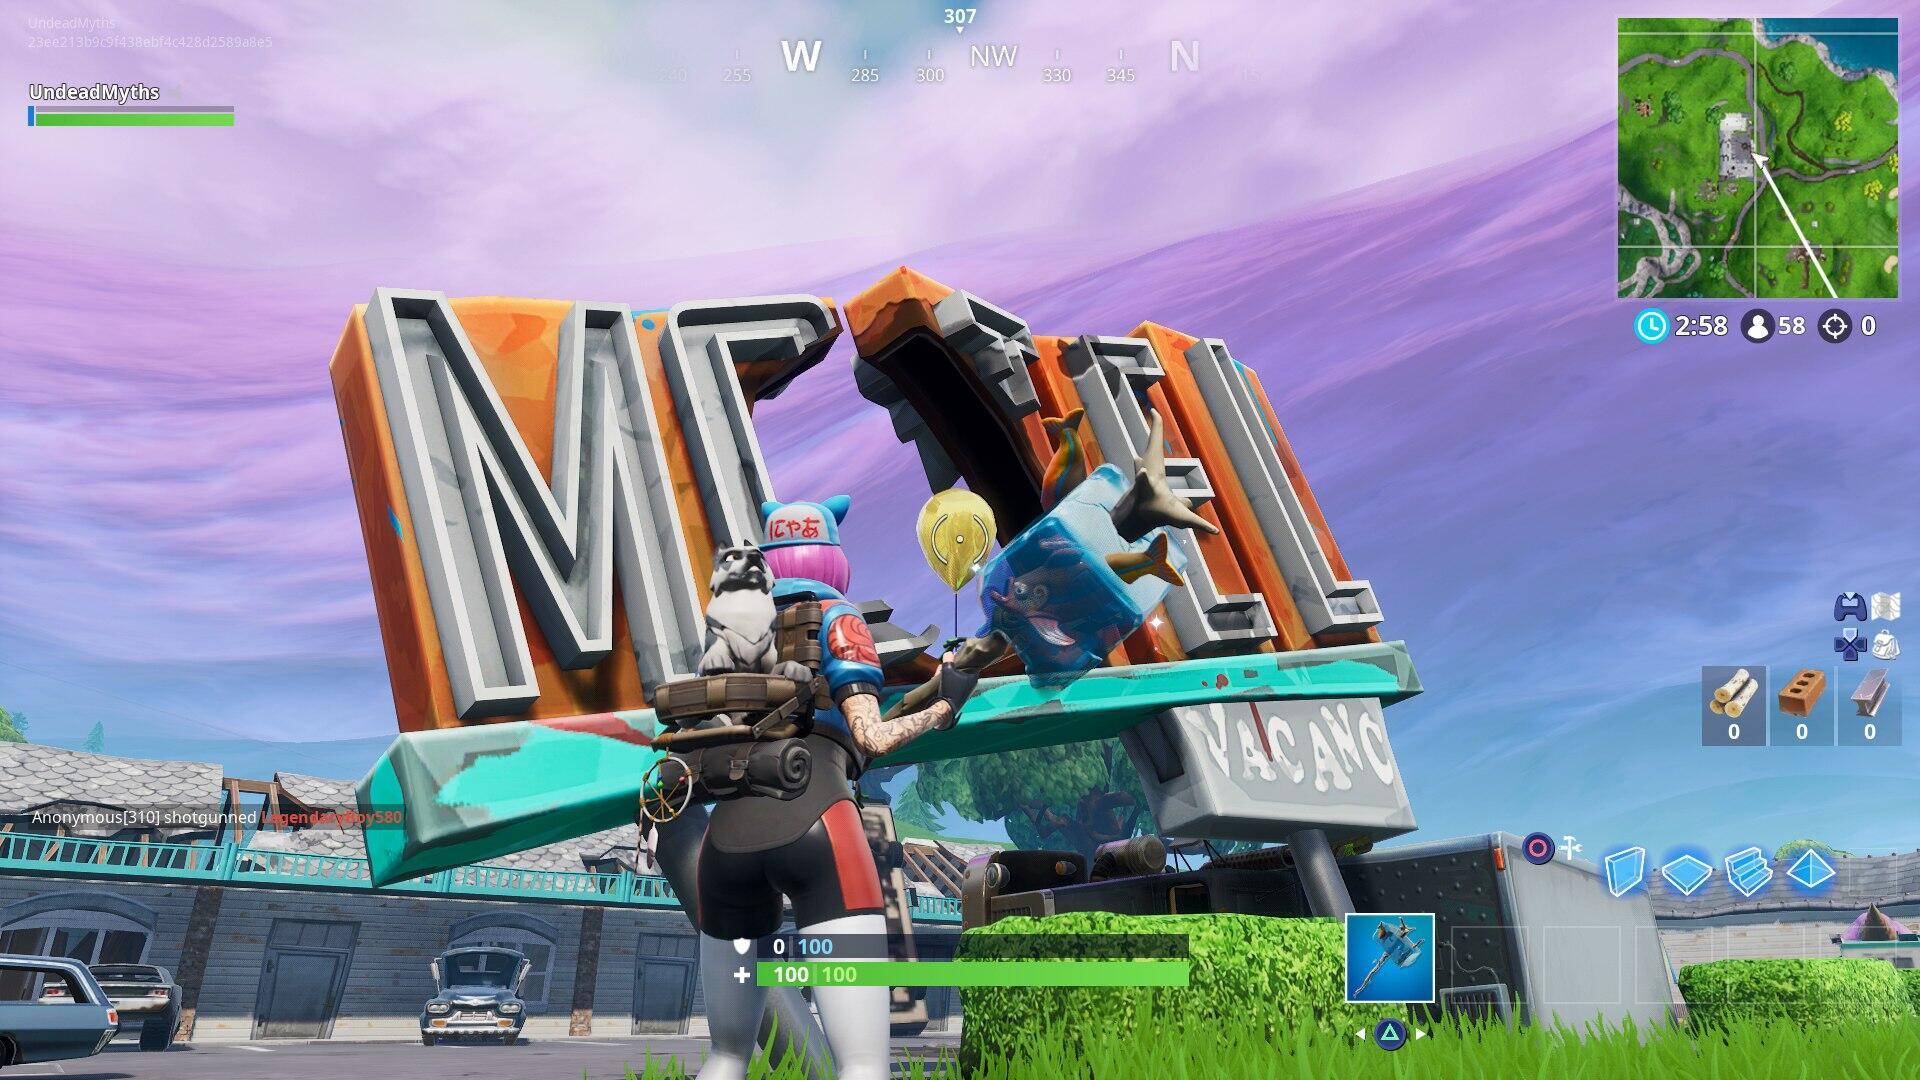 Fortnite Golden Balloon Locations - How to Find All the Fortnite Golden Balloons